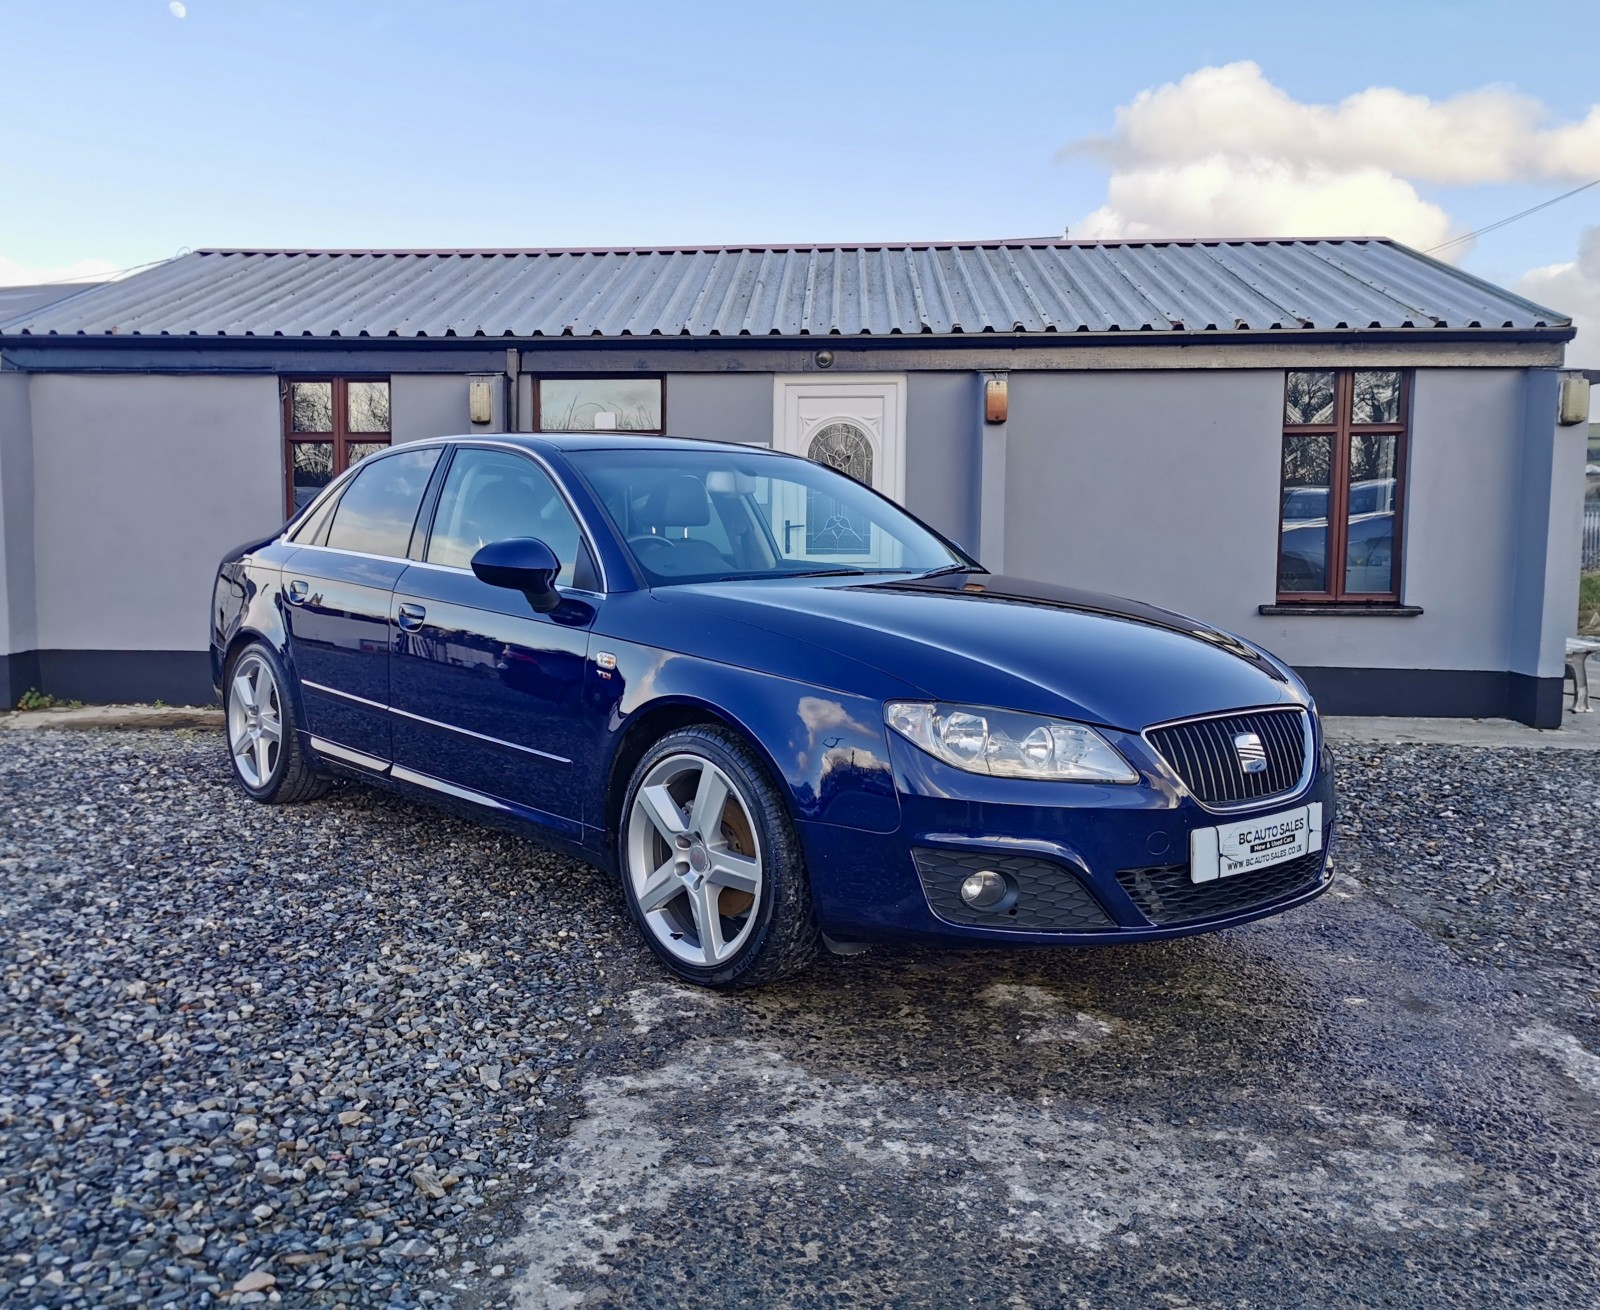 2011 SEAT Exeo TDI CR SPORT TECH Diesel Manual – BC Autosales 17A Airfield Road, Eglinton, Londonderry BT47 3PZ, UK